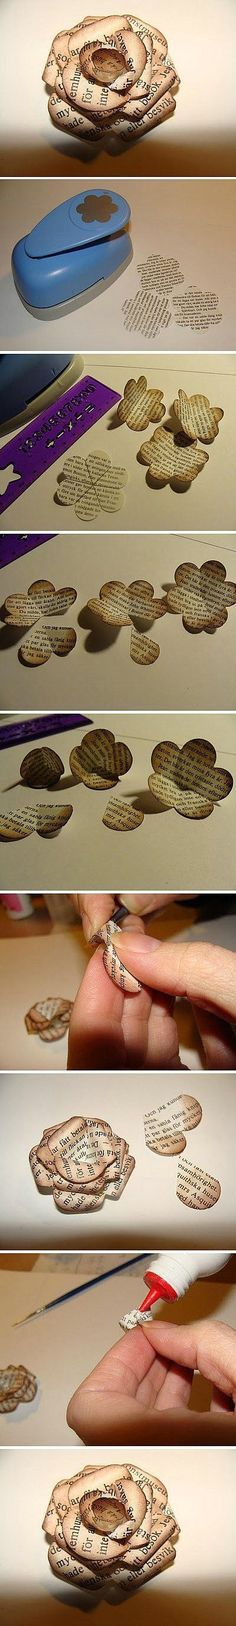 DIY Paper Flowers flowers diy crafts home made easy crafts craft idea crafts ideas diy ideas diy crafts diy idea do it yourself diy projects diy craft handmade How To Make Paper Flowers, Paper Flowers Diy, Paper Roses, Handmade Flowers, Flower Crafts, Diy Paper, Fabric Flowers, Paper Art, Paper Crafts